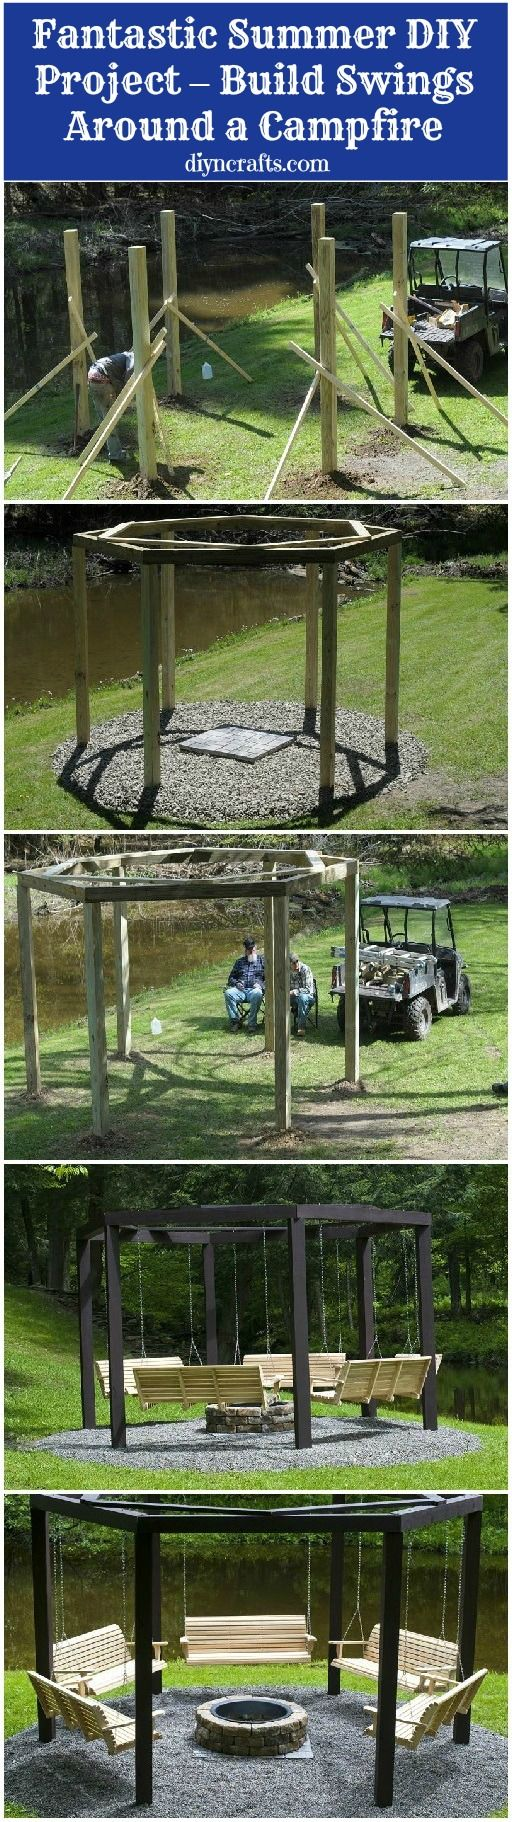 Fantastic Summer DIY Project – Build Swings Around a Campfire (if I could only get a yard big enough)